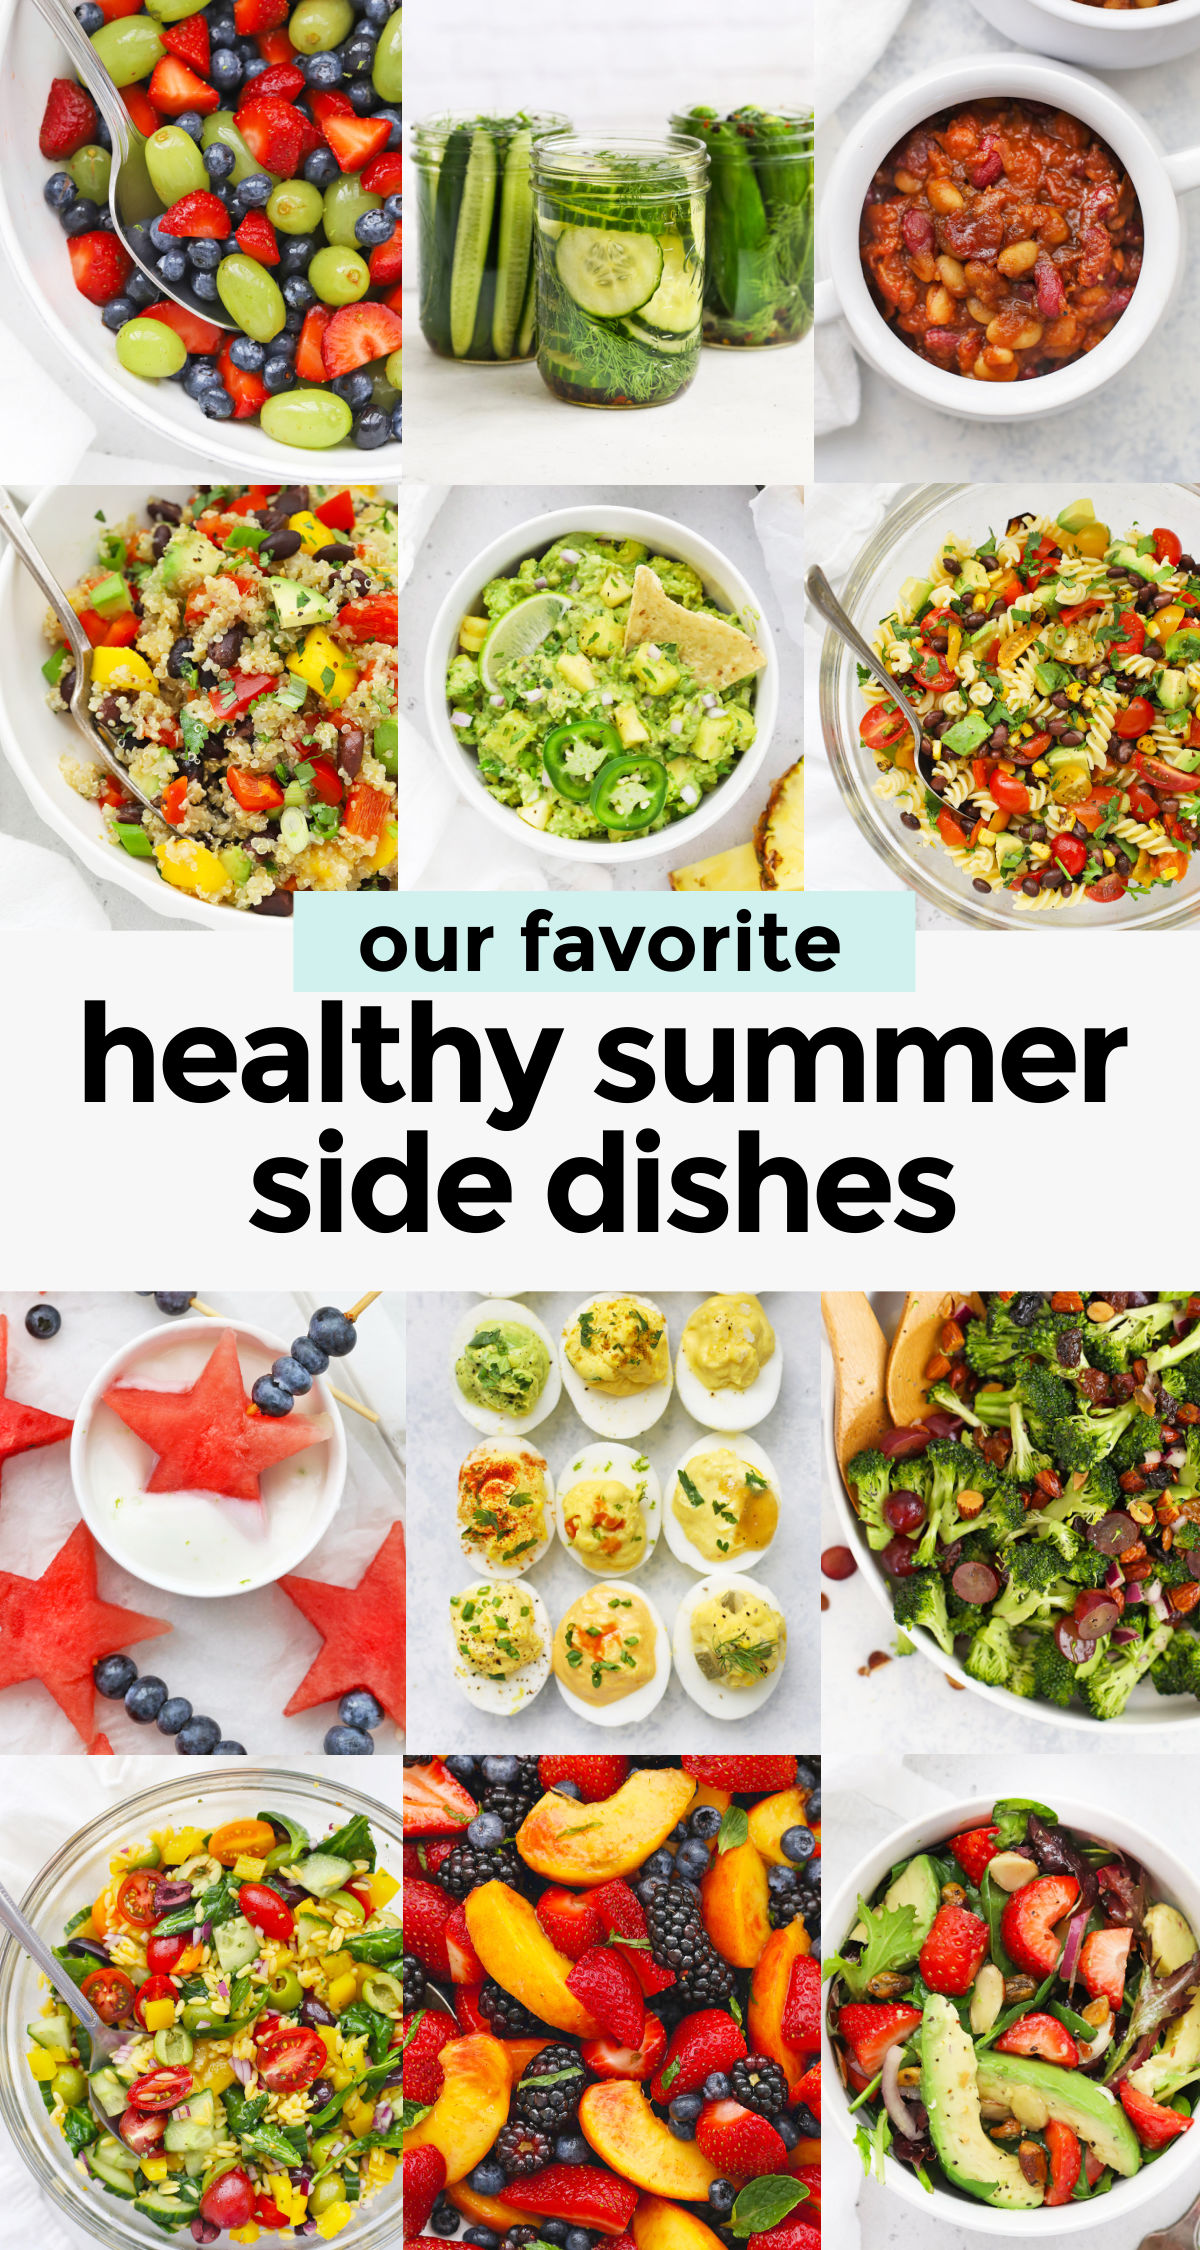 Our Favorite Healthy Summer Side Dishes--summer salads & sides that are perfect for your next barbecue or cookout! (Gluten-Free, Vegan, Paleo) // Summer Side Dish // BBQ Side Dishes // Barbecue Side Dishes // Grilling Side Dishes // Potluck Salads // Potluck Side Dish